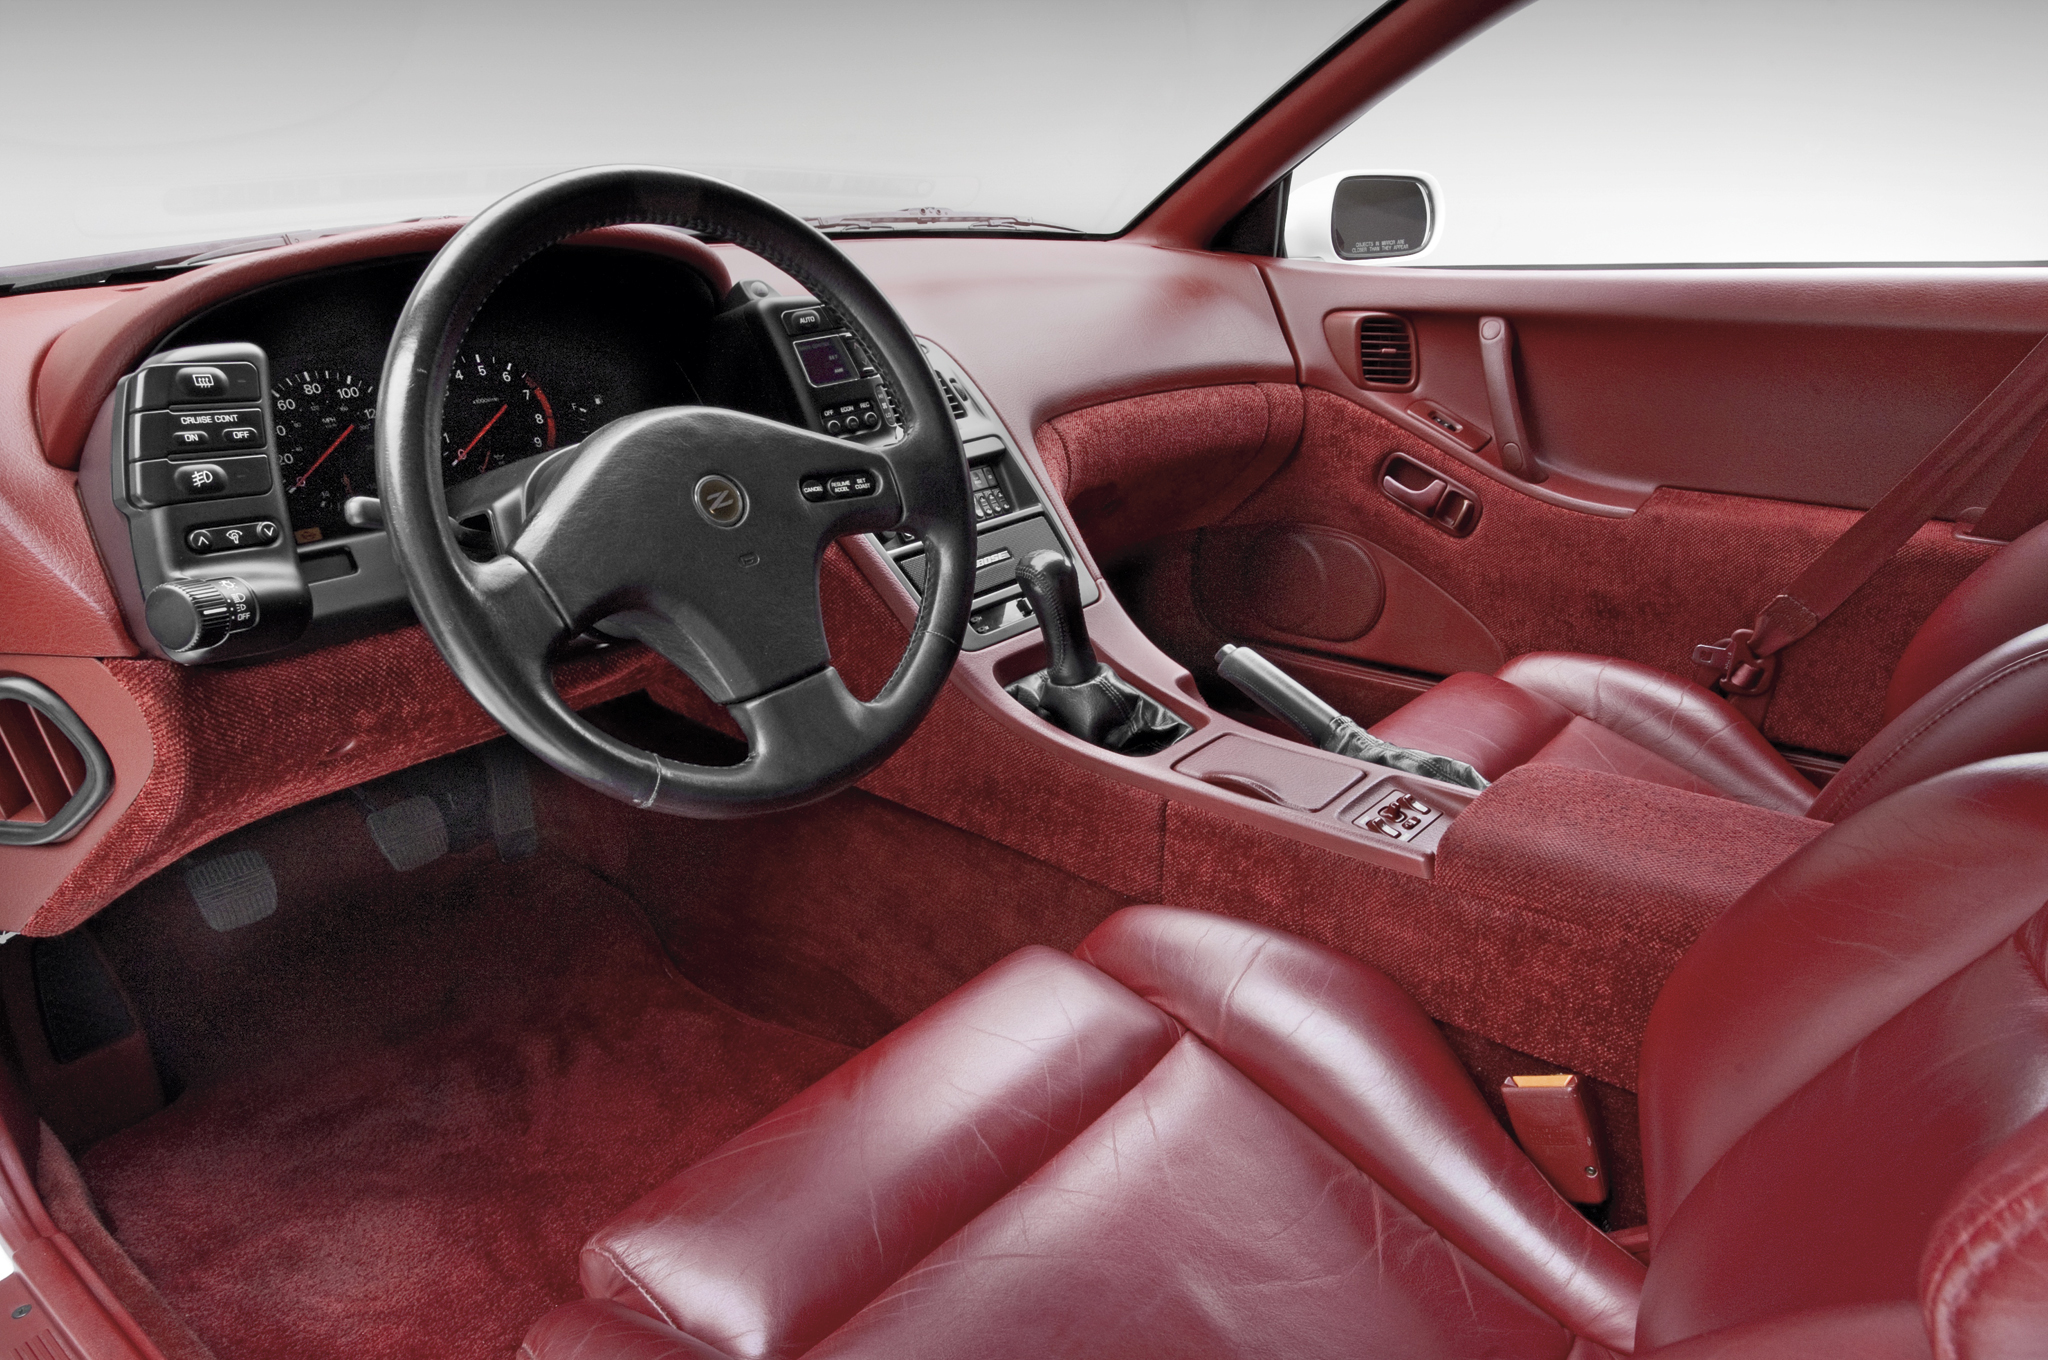 1990-1996 Nissan 300ZX Buyer's Guide